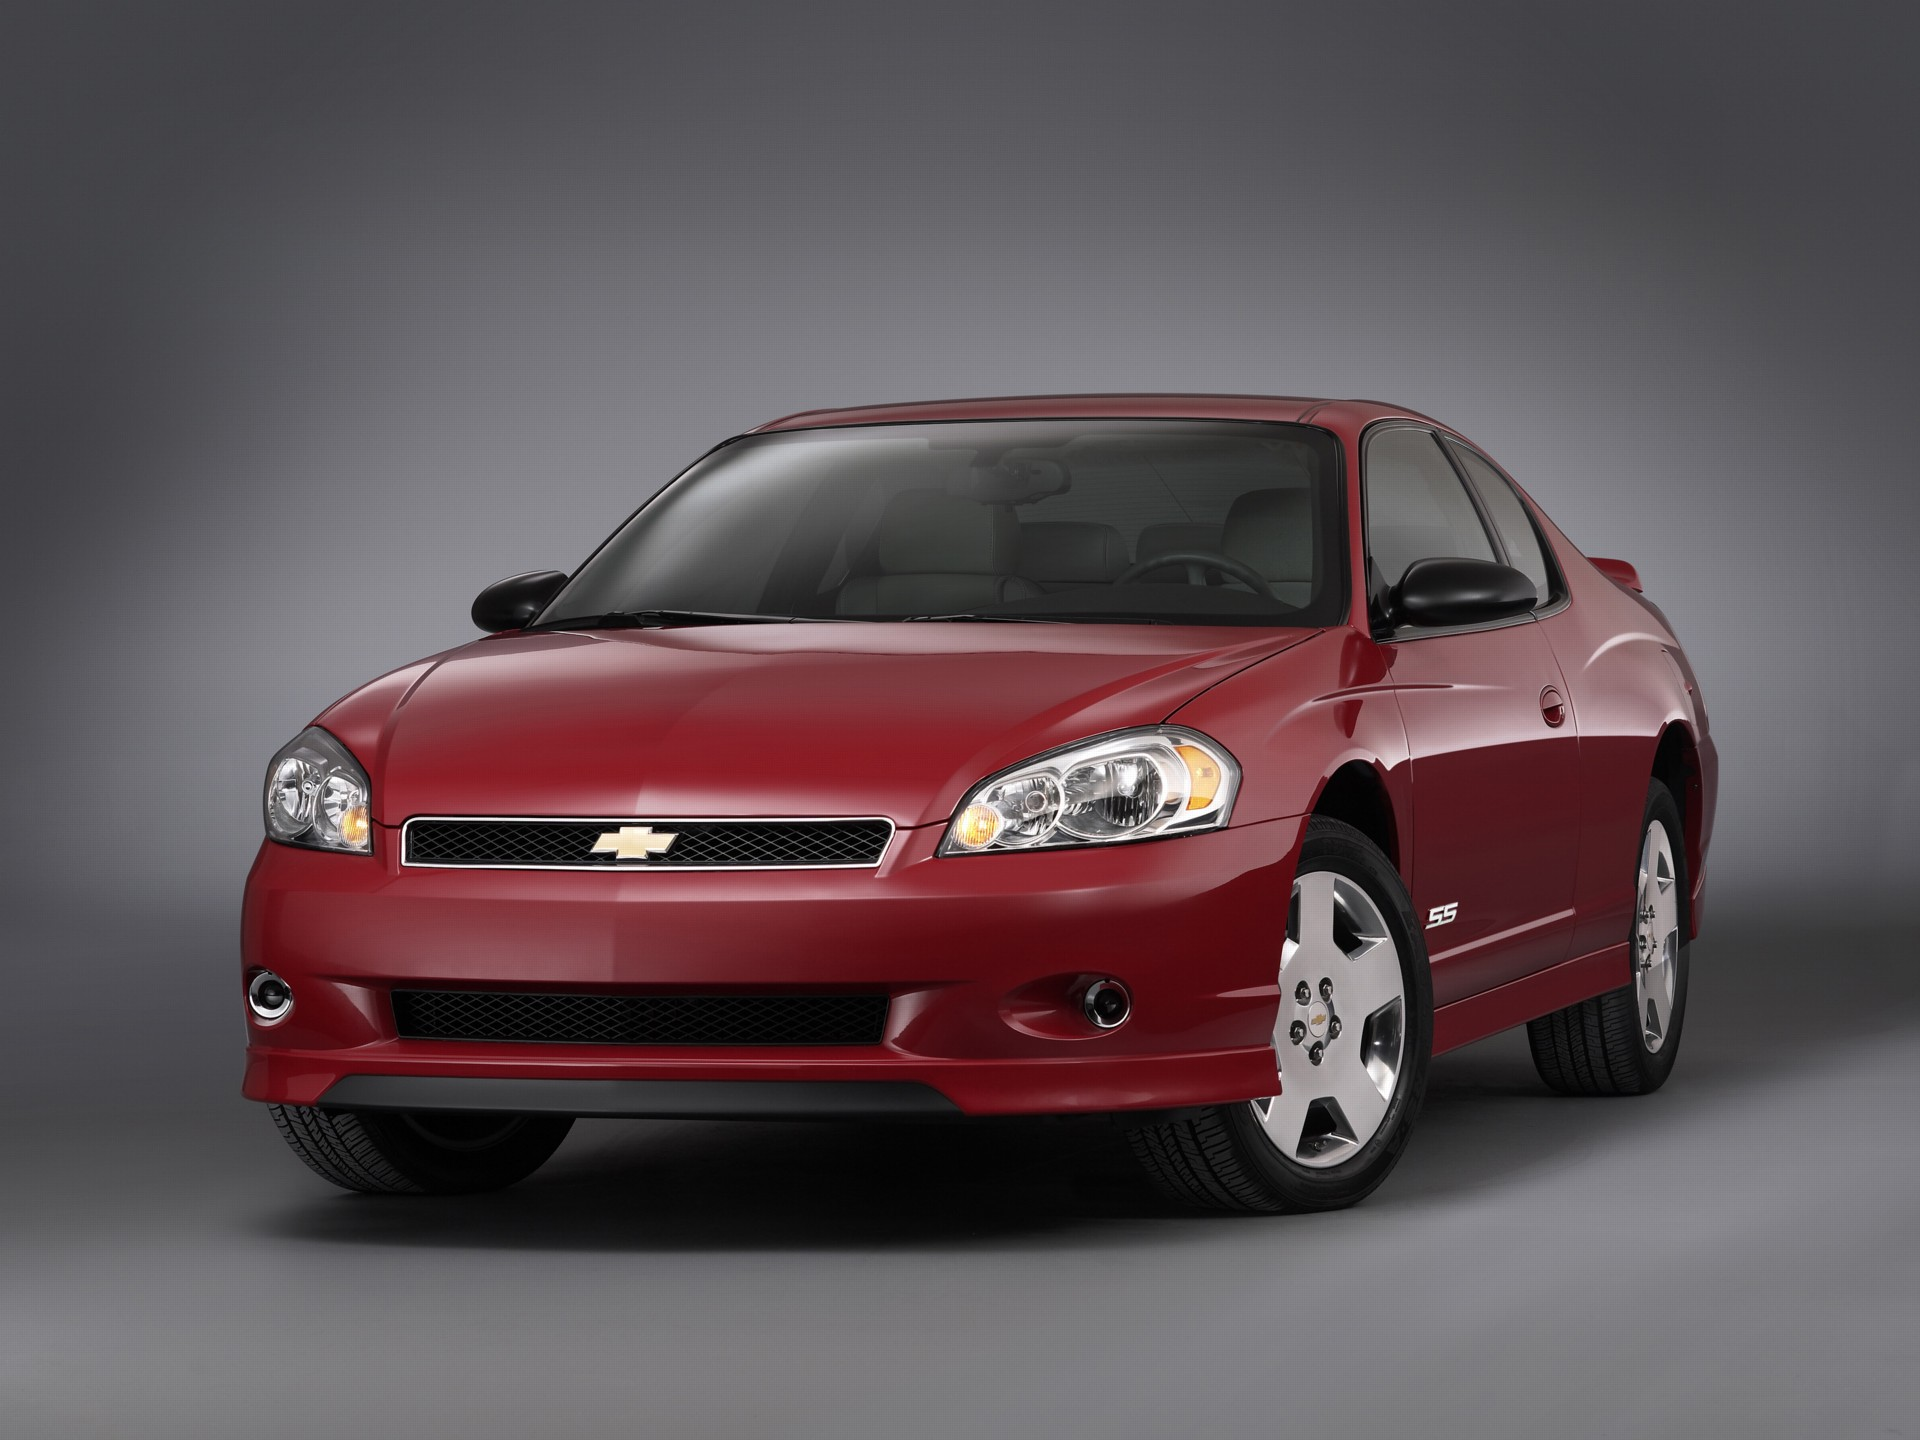 True Market Value >> 2007 Chevrolet Monte Carlo Pictures, History, Value, Research, News - conceptcarz.com